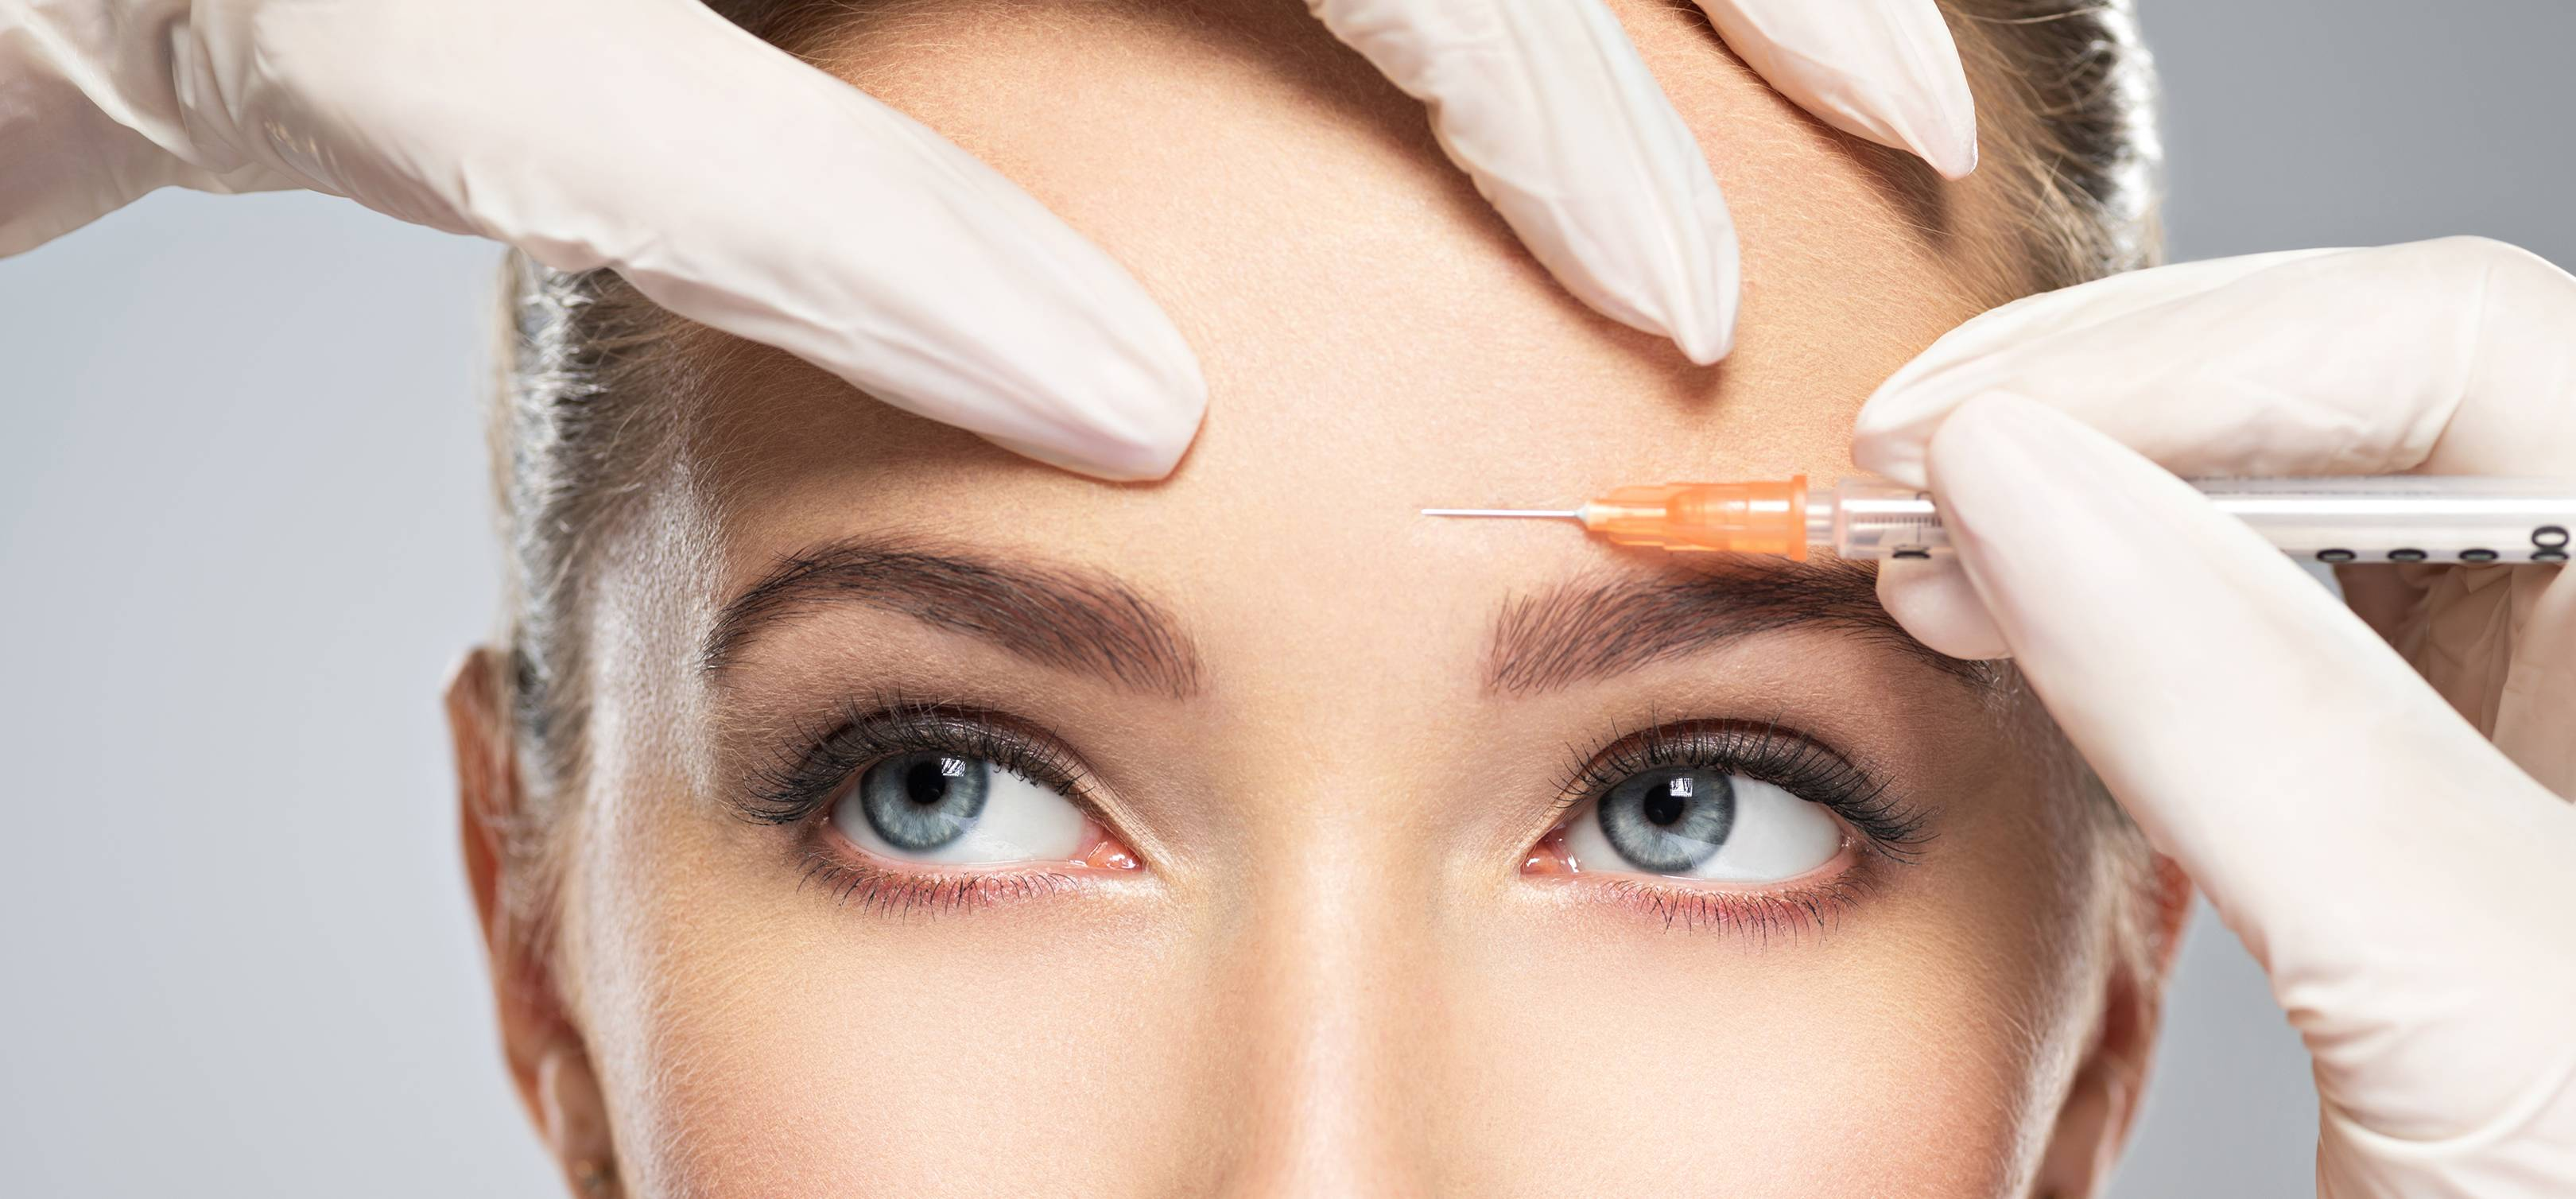 Does Botox Hurt? What Does It Really Feel Like? An Honest